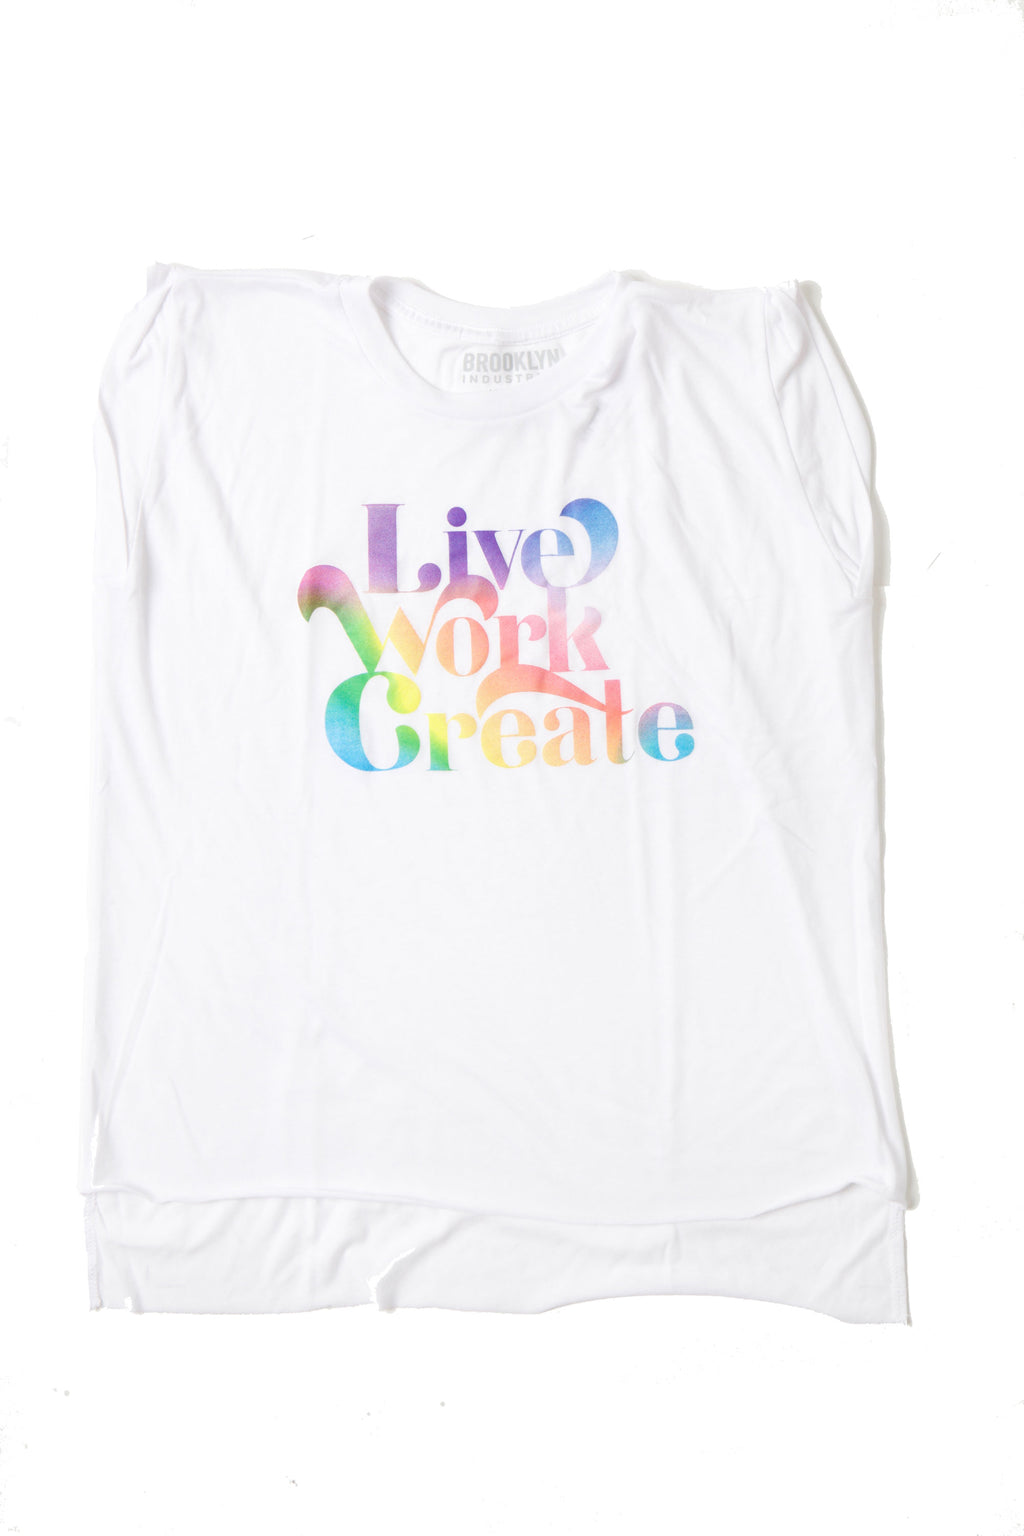 flat lay sheer capped sleeve white shirt with live work create in rainbow retro text